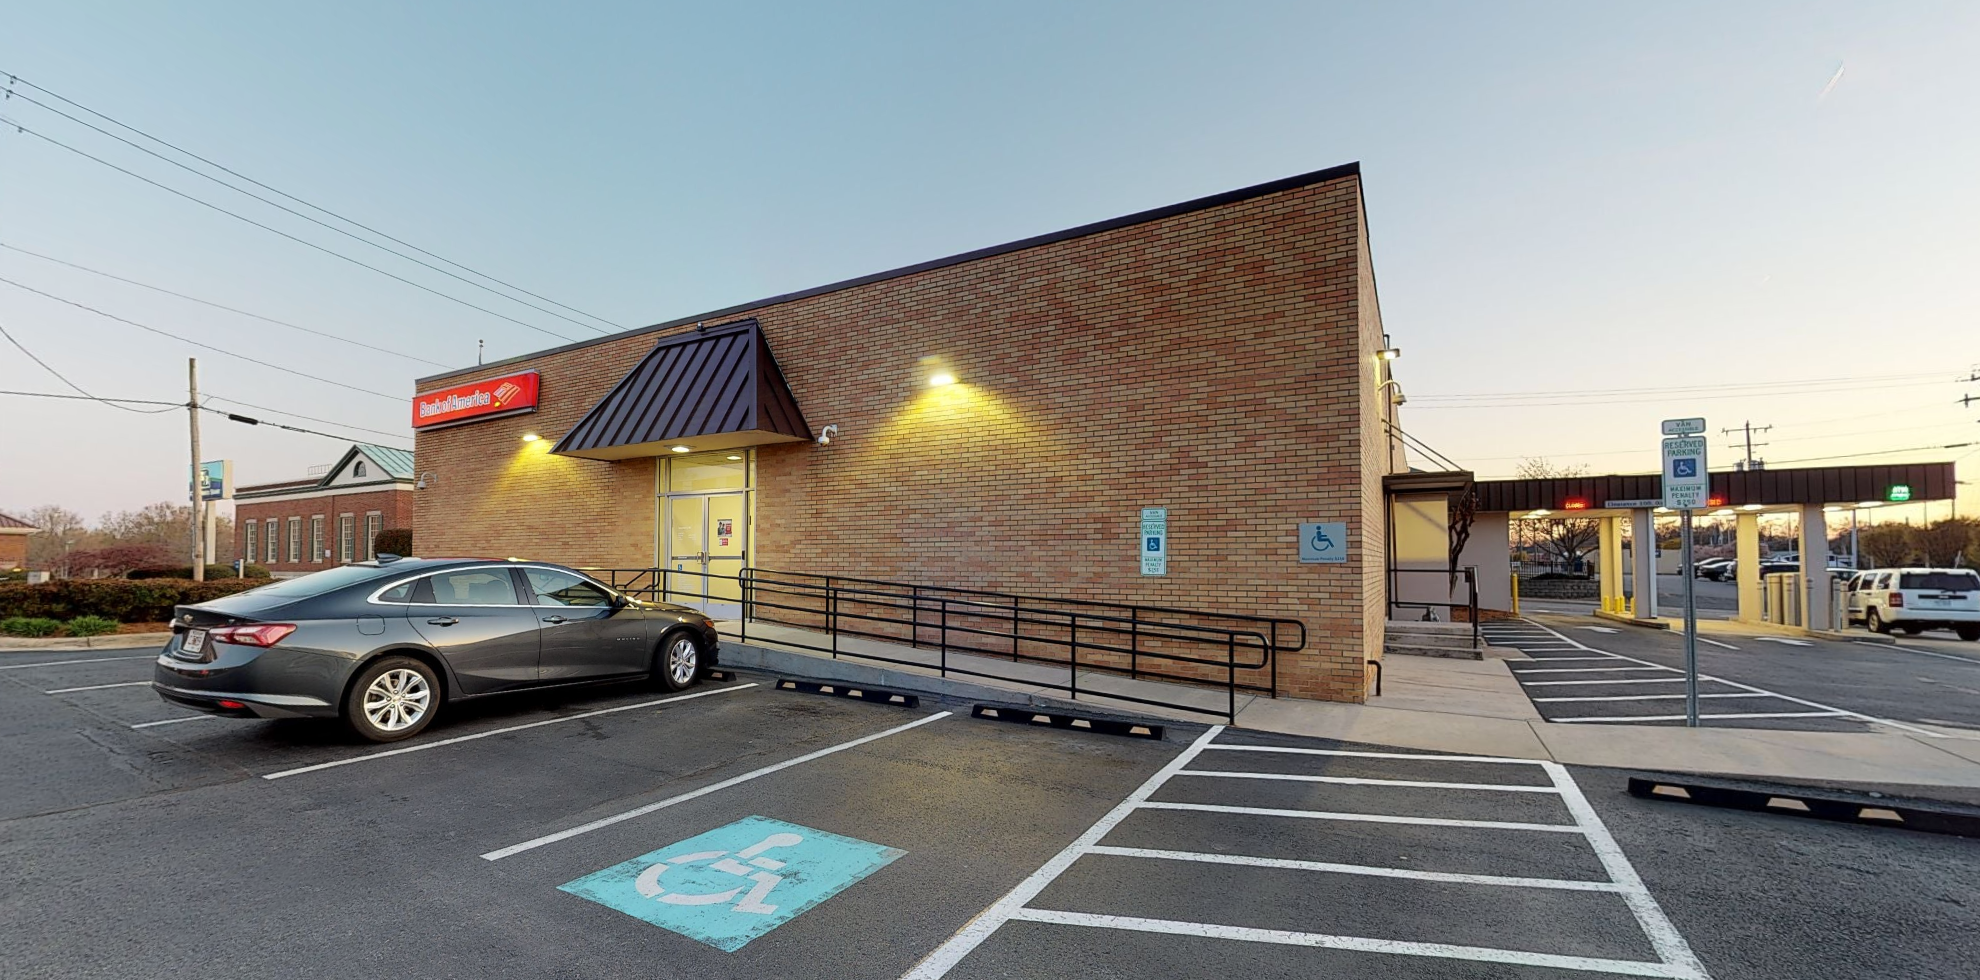 Bank of America financial center with drive-thru ATM   314 N Main St, Mooresville, NC 28115